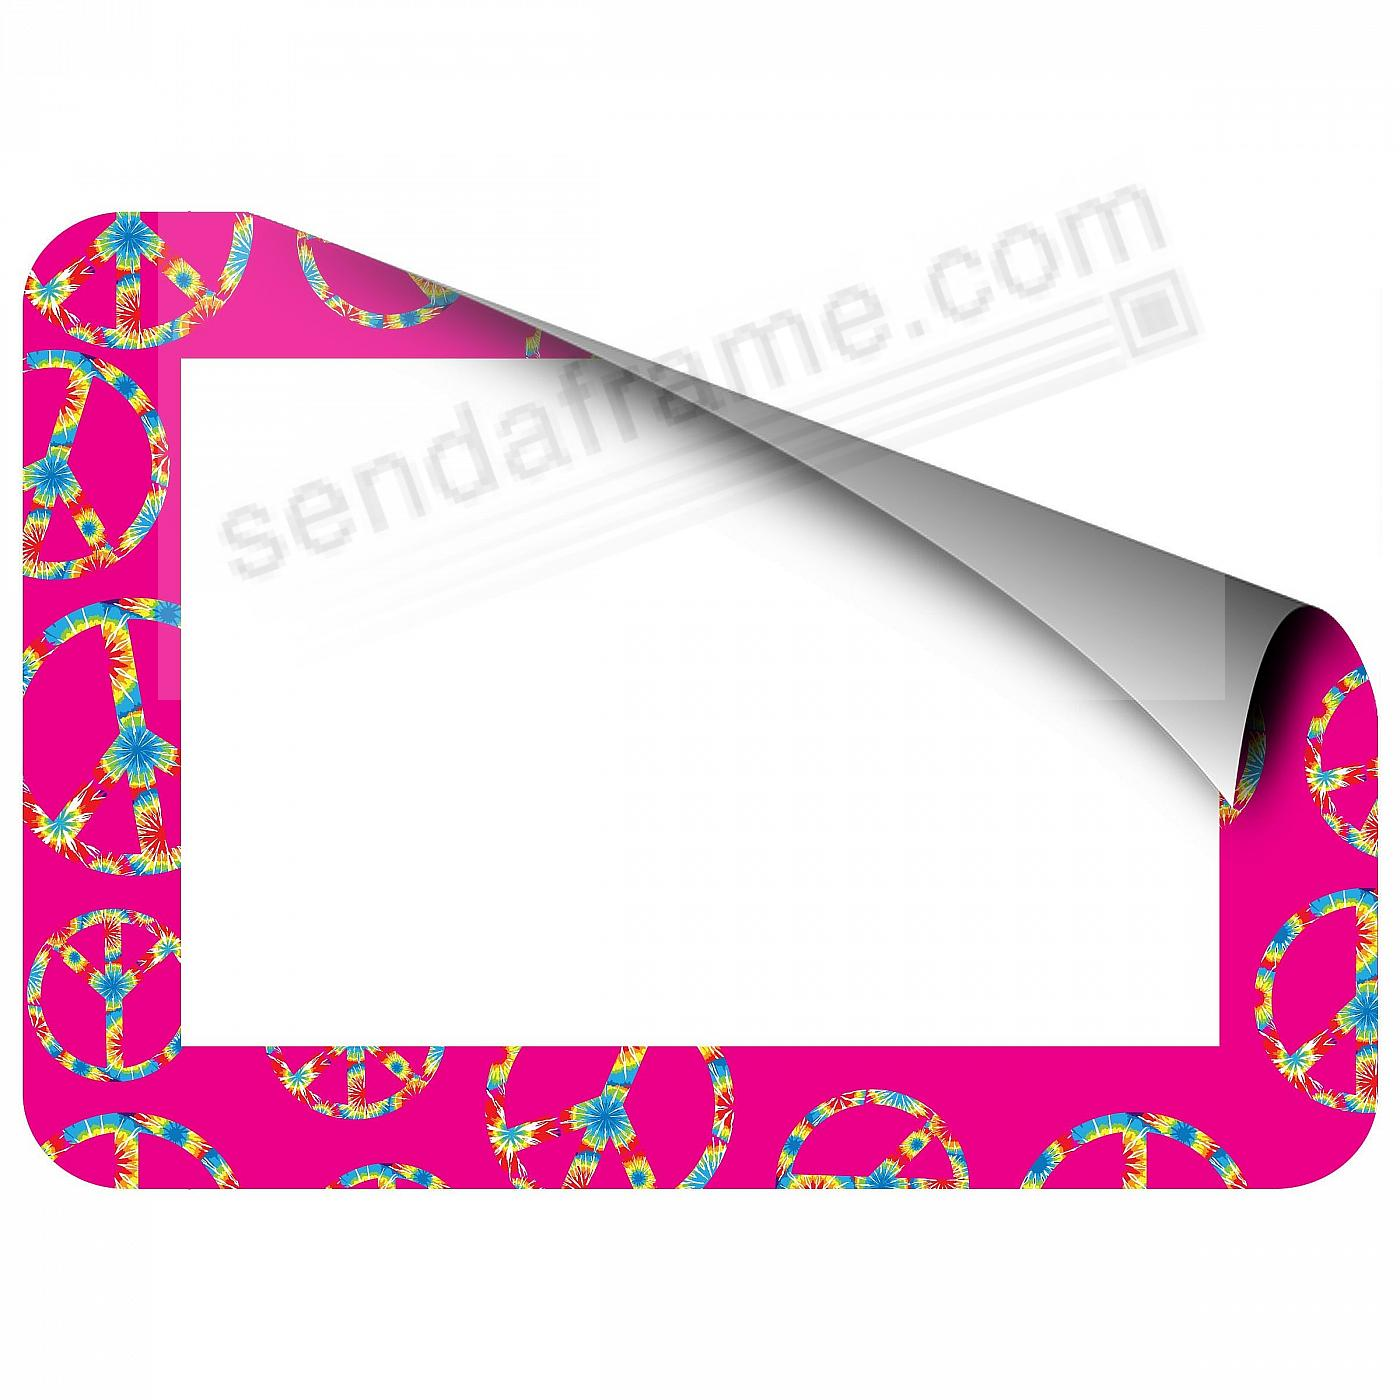 PINK PEACE TRENDYKIDZ 4x6 Frame with Clear DRY ERASE™ by Fodeez™